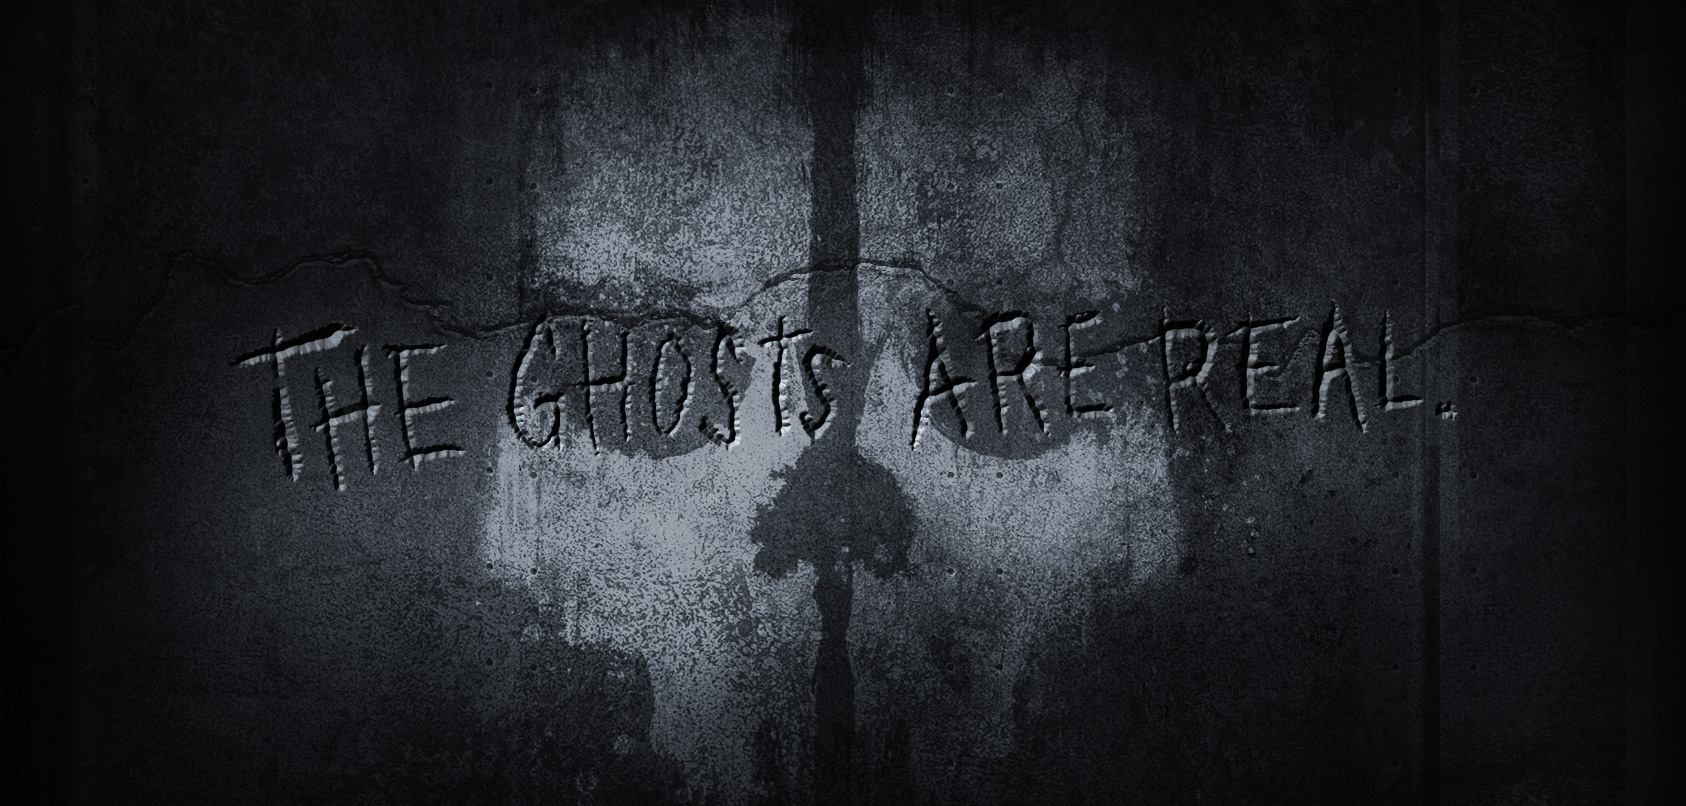 call of duty ghost wallpaper iphone images free download 1680×1050